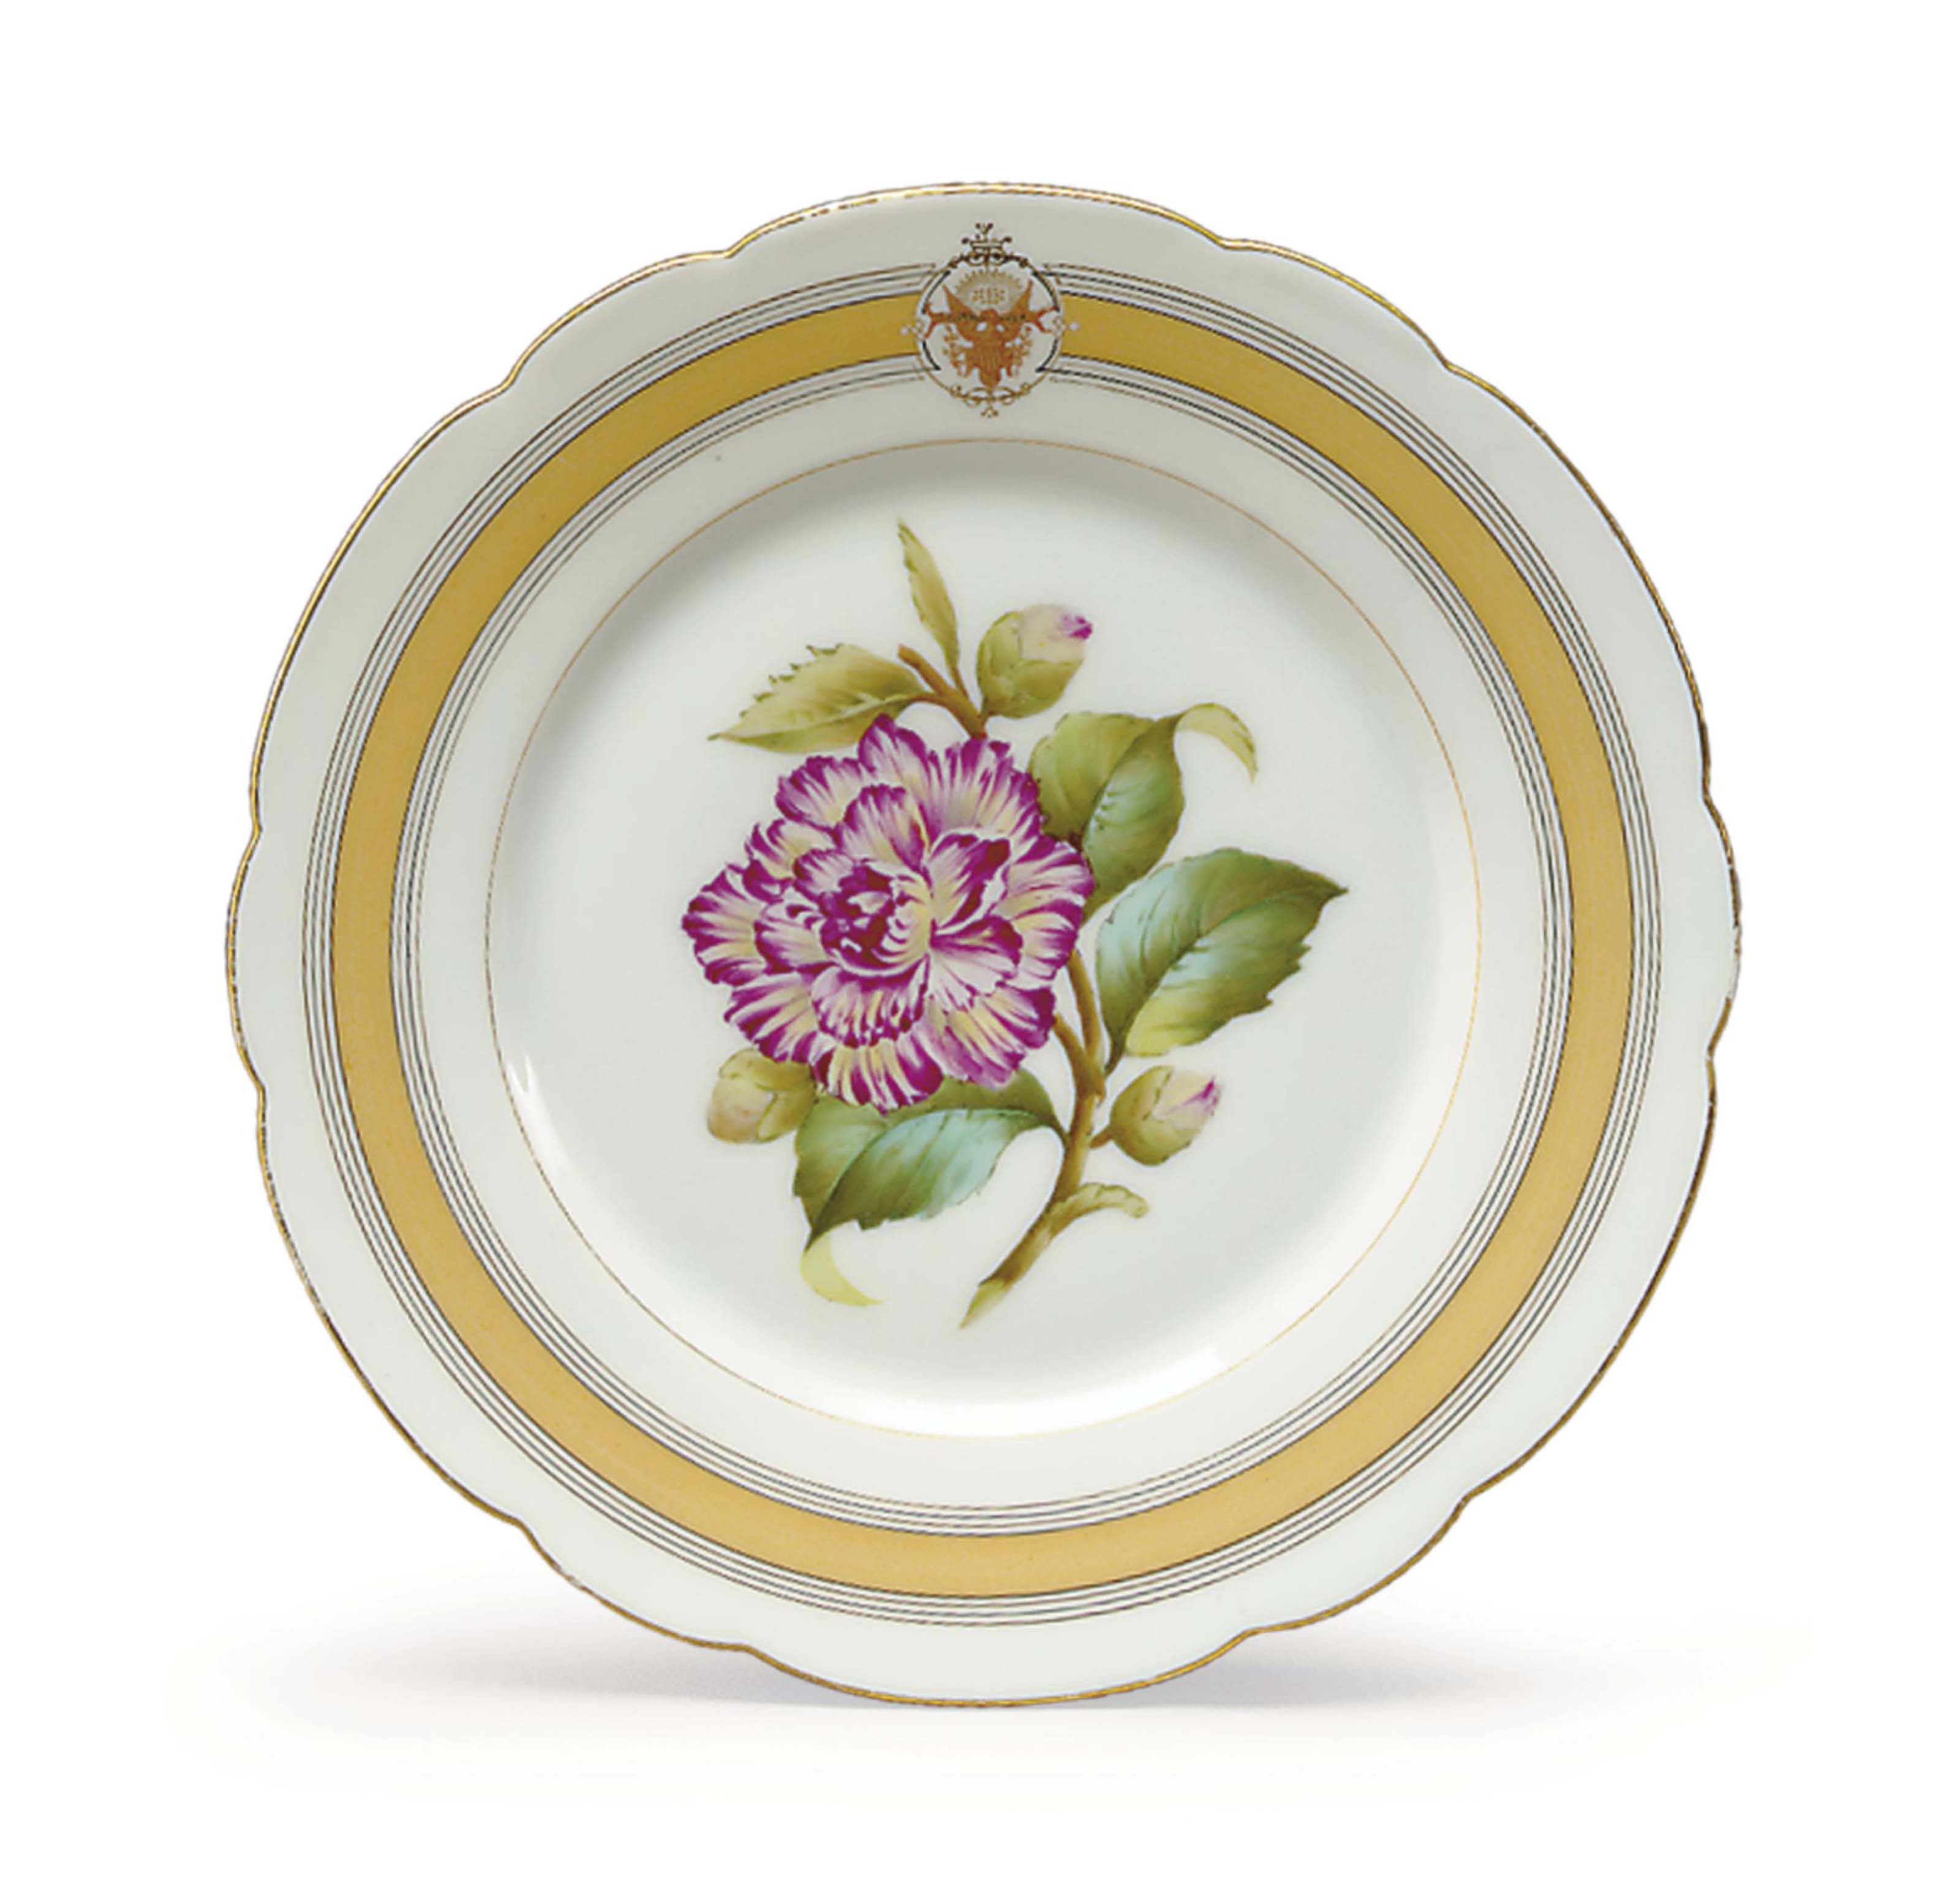 A DESSERT PLATE FROM A STATE SERVICE OF ULYSSES S. GRANT (1869-1877)